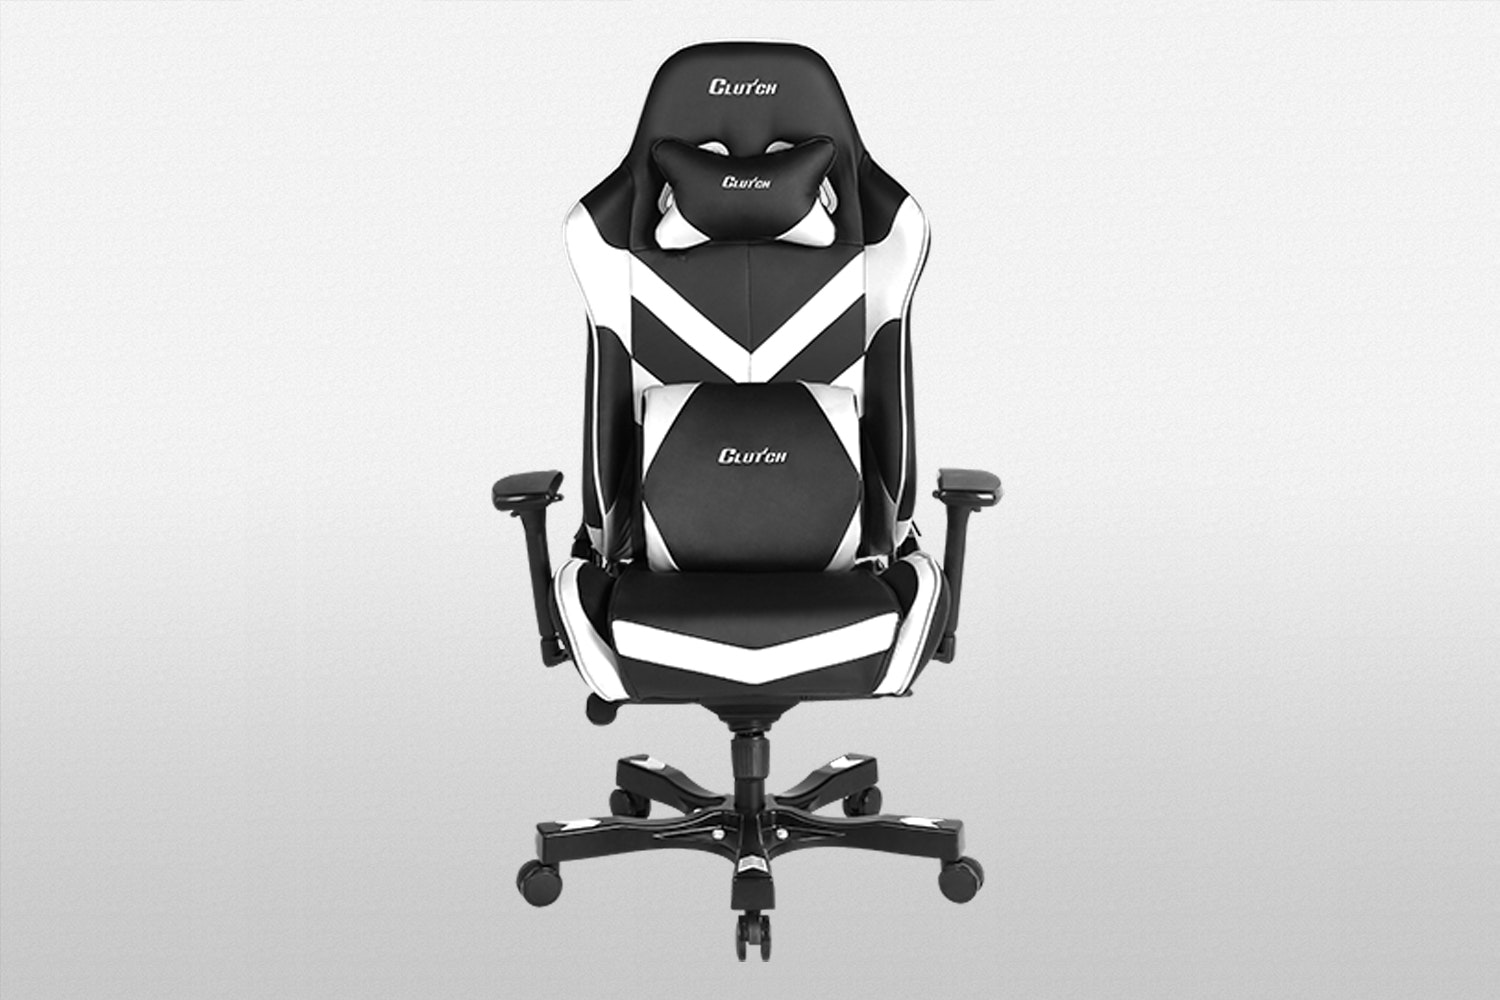 Clutch Throttle Series Chairs - USA Only